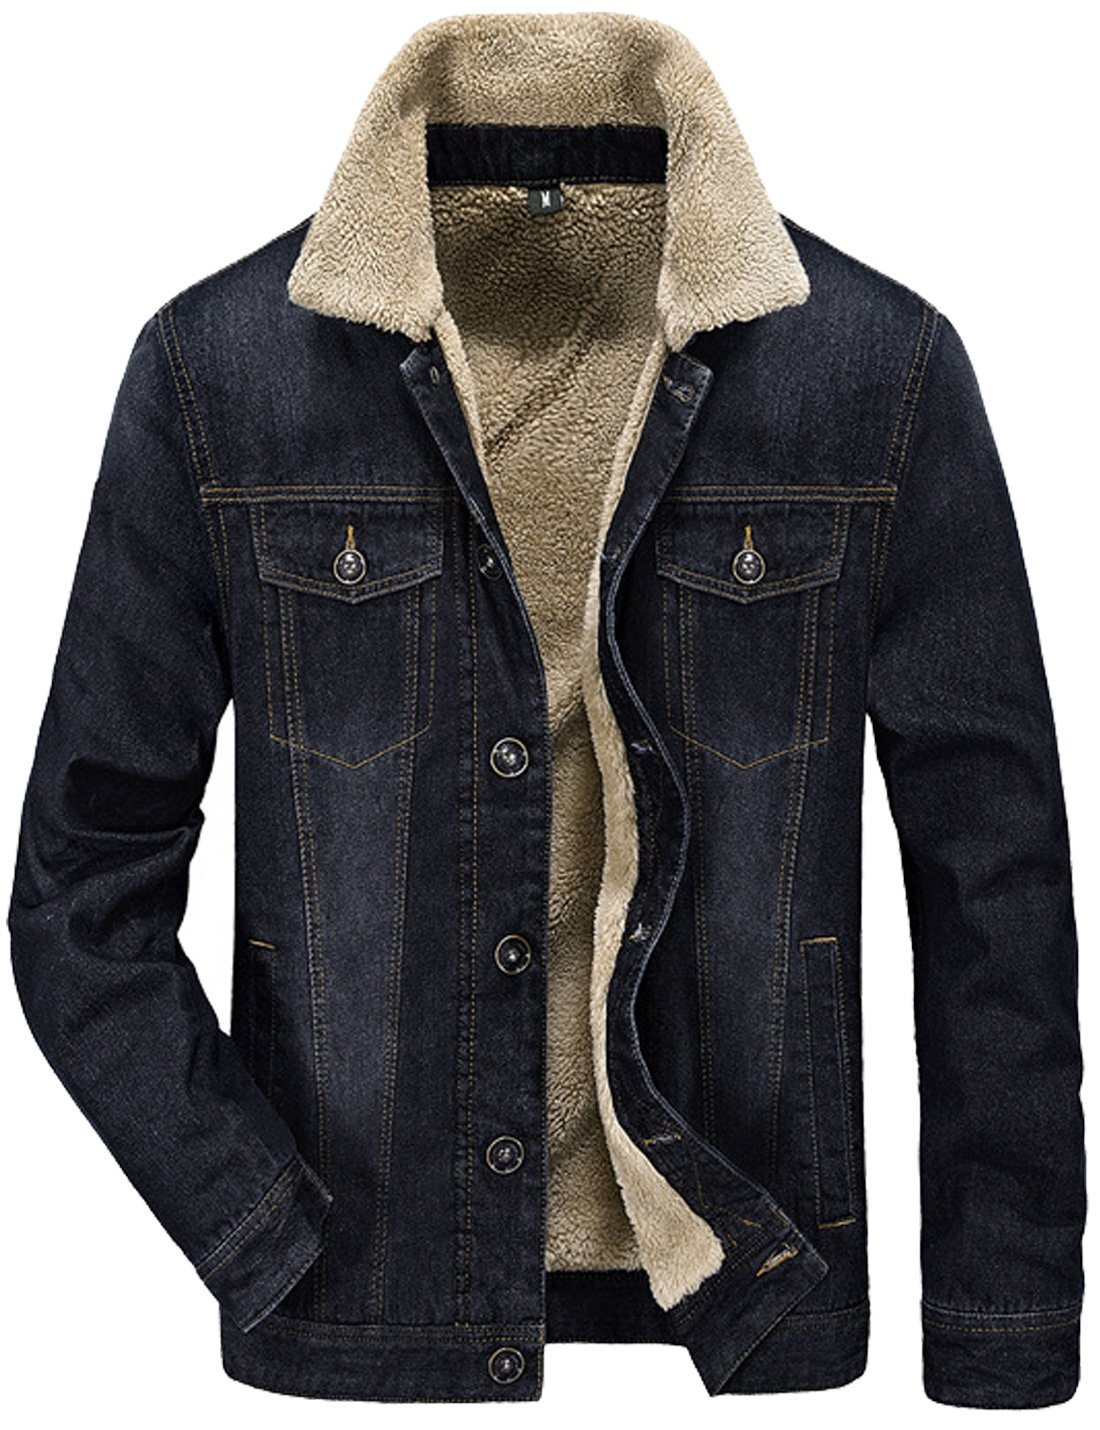 Tanming Men's Winter Casual Lined With Cashmere Warm Denim Jacket (X-Small, Black) by Tanming